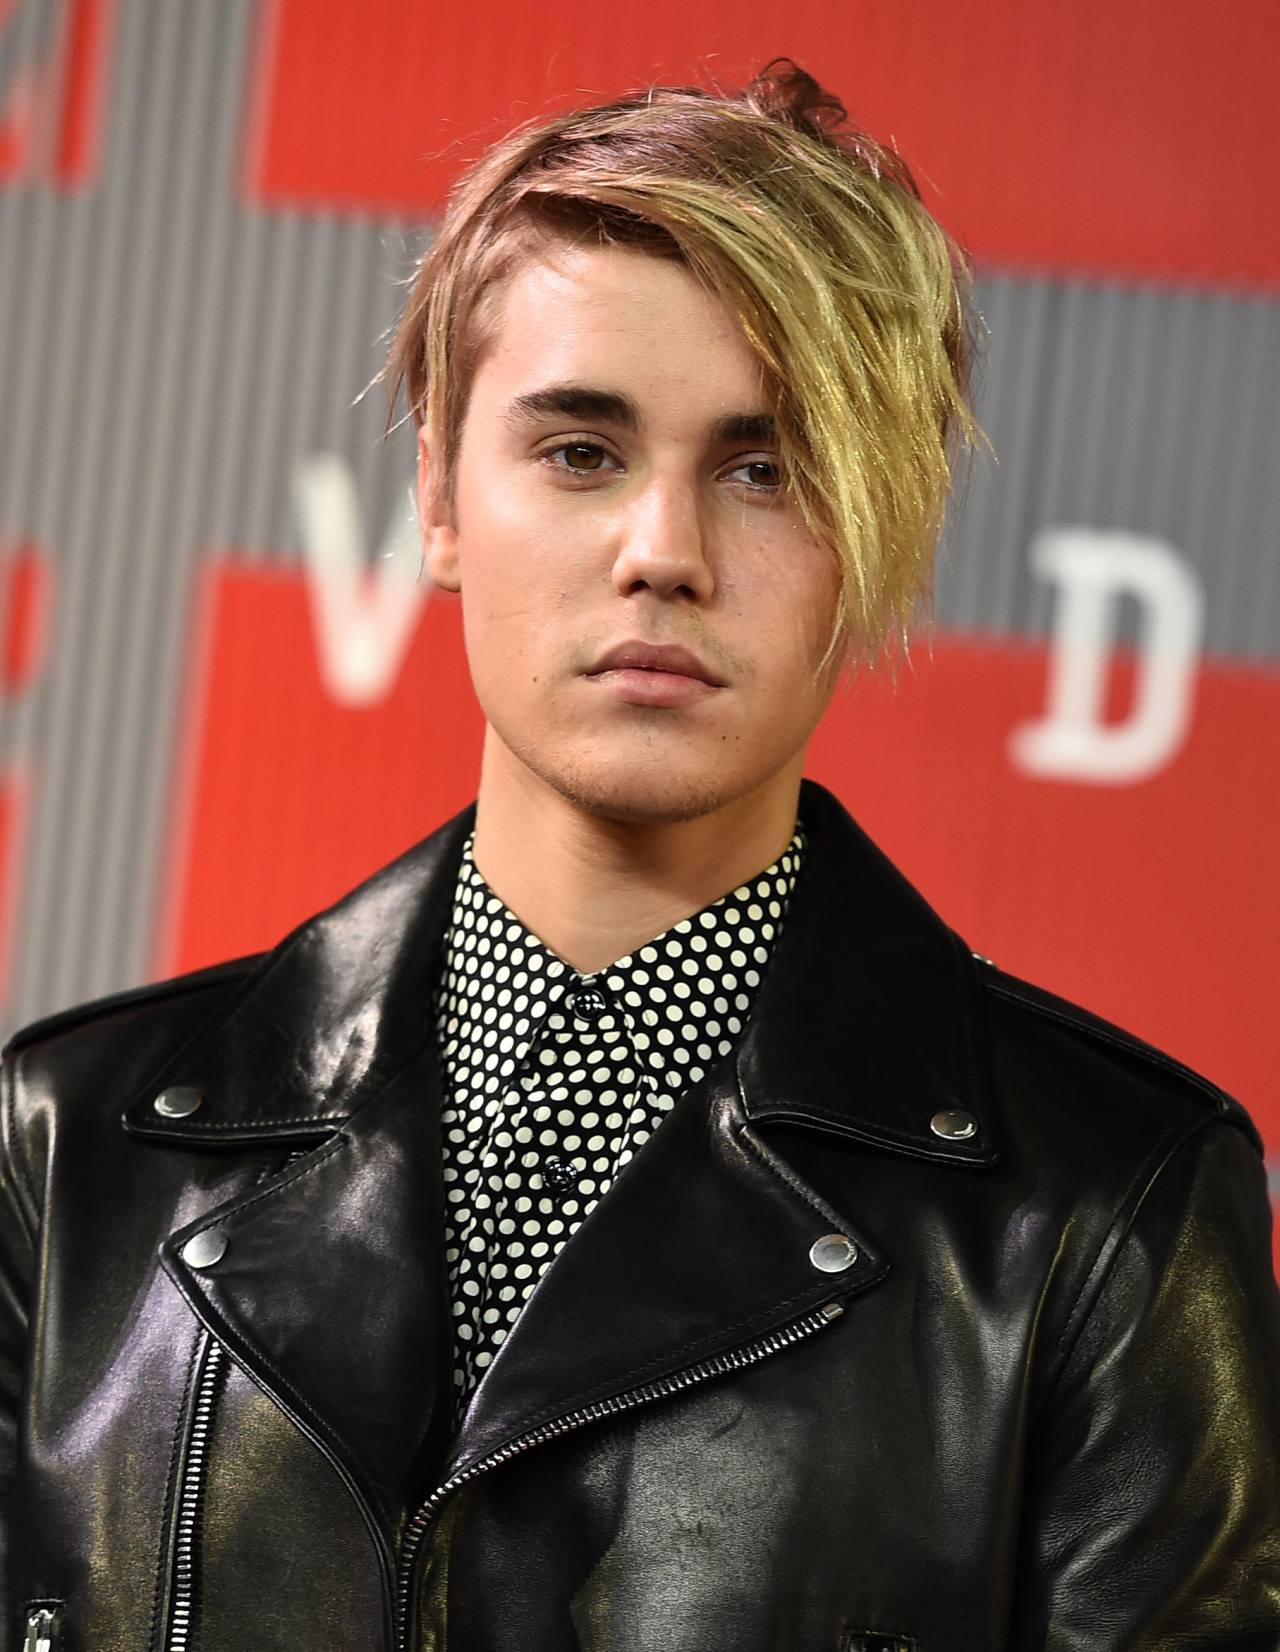 Justin Bieber in Leather Coat 5051.94 Kb